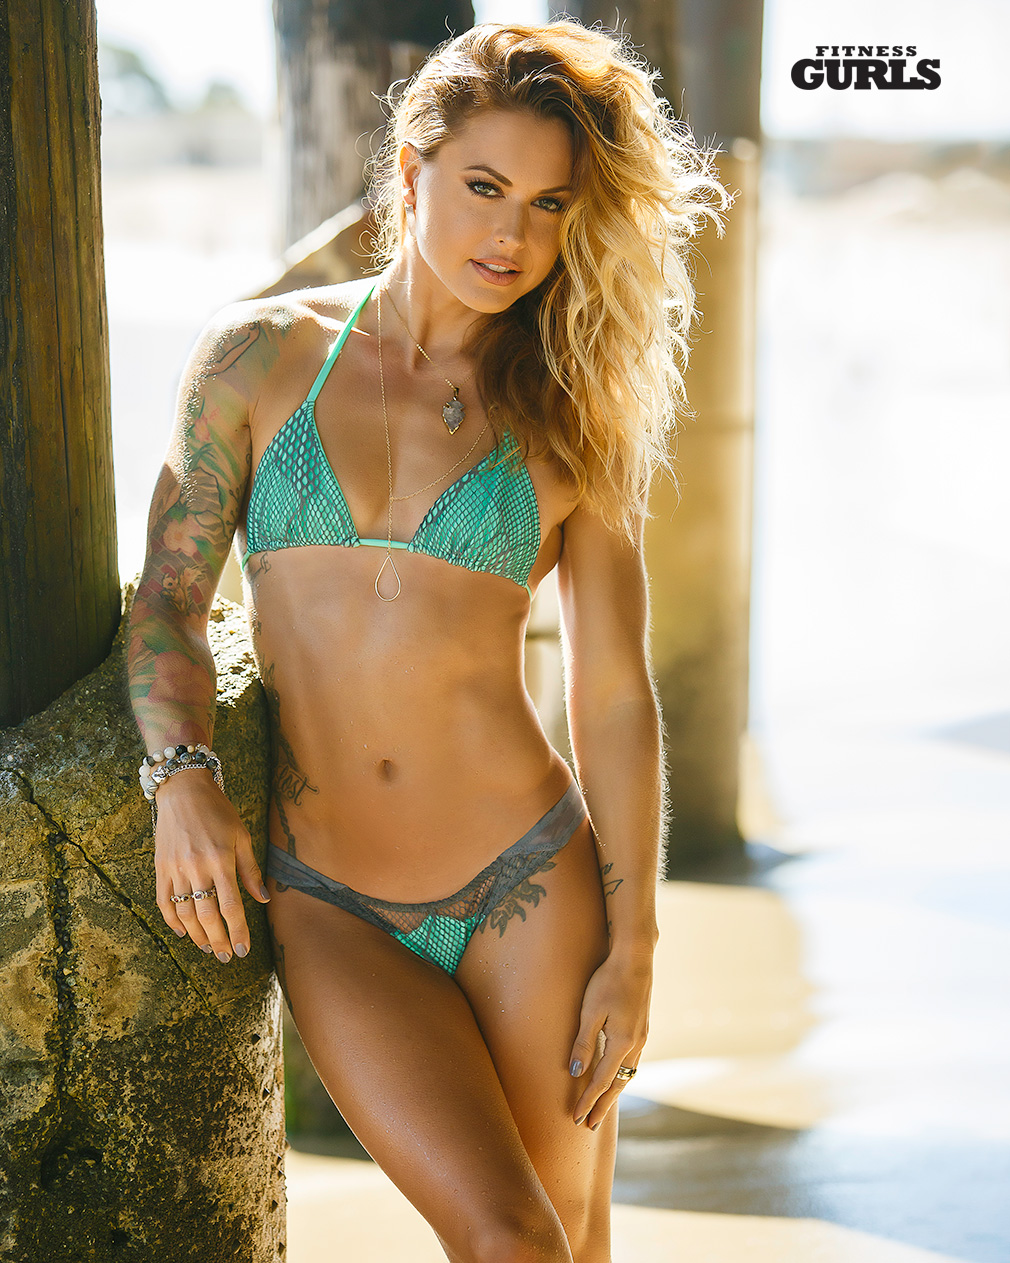 christmas abbott tops our 25 hottest physique list page 3 of 8 fitness gurls magazine